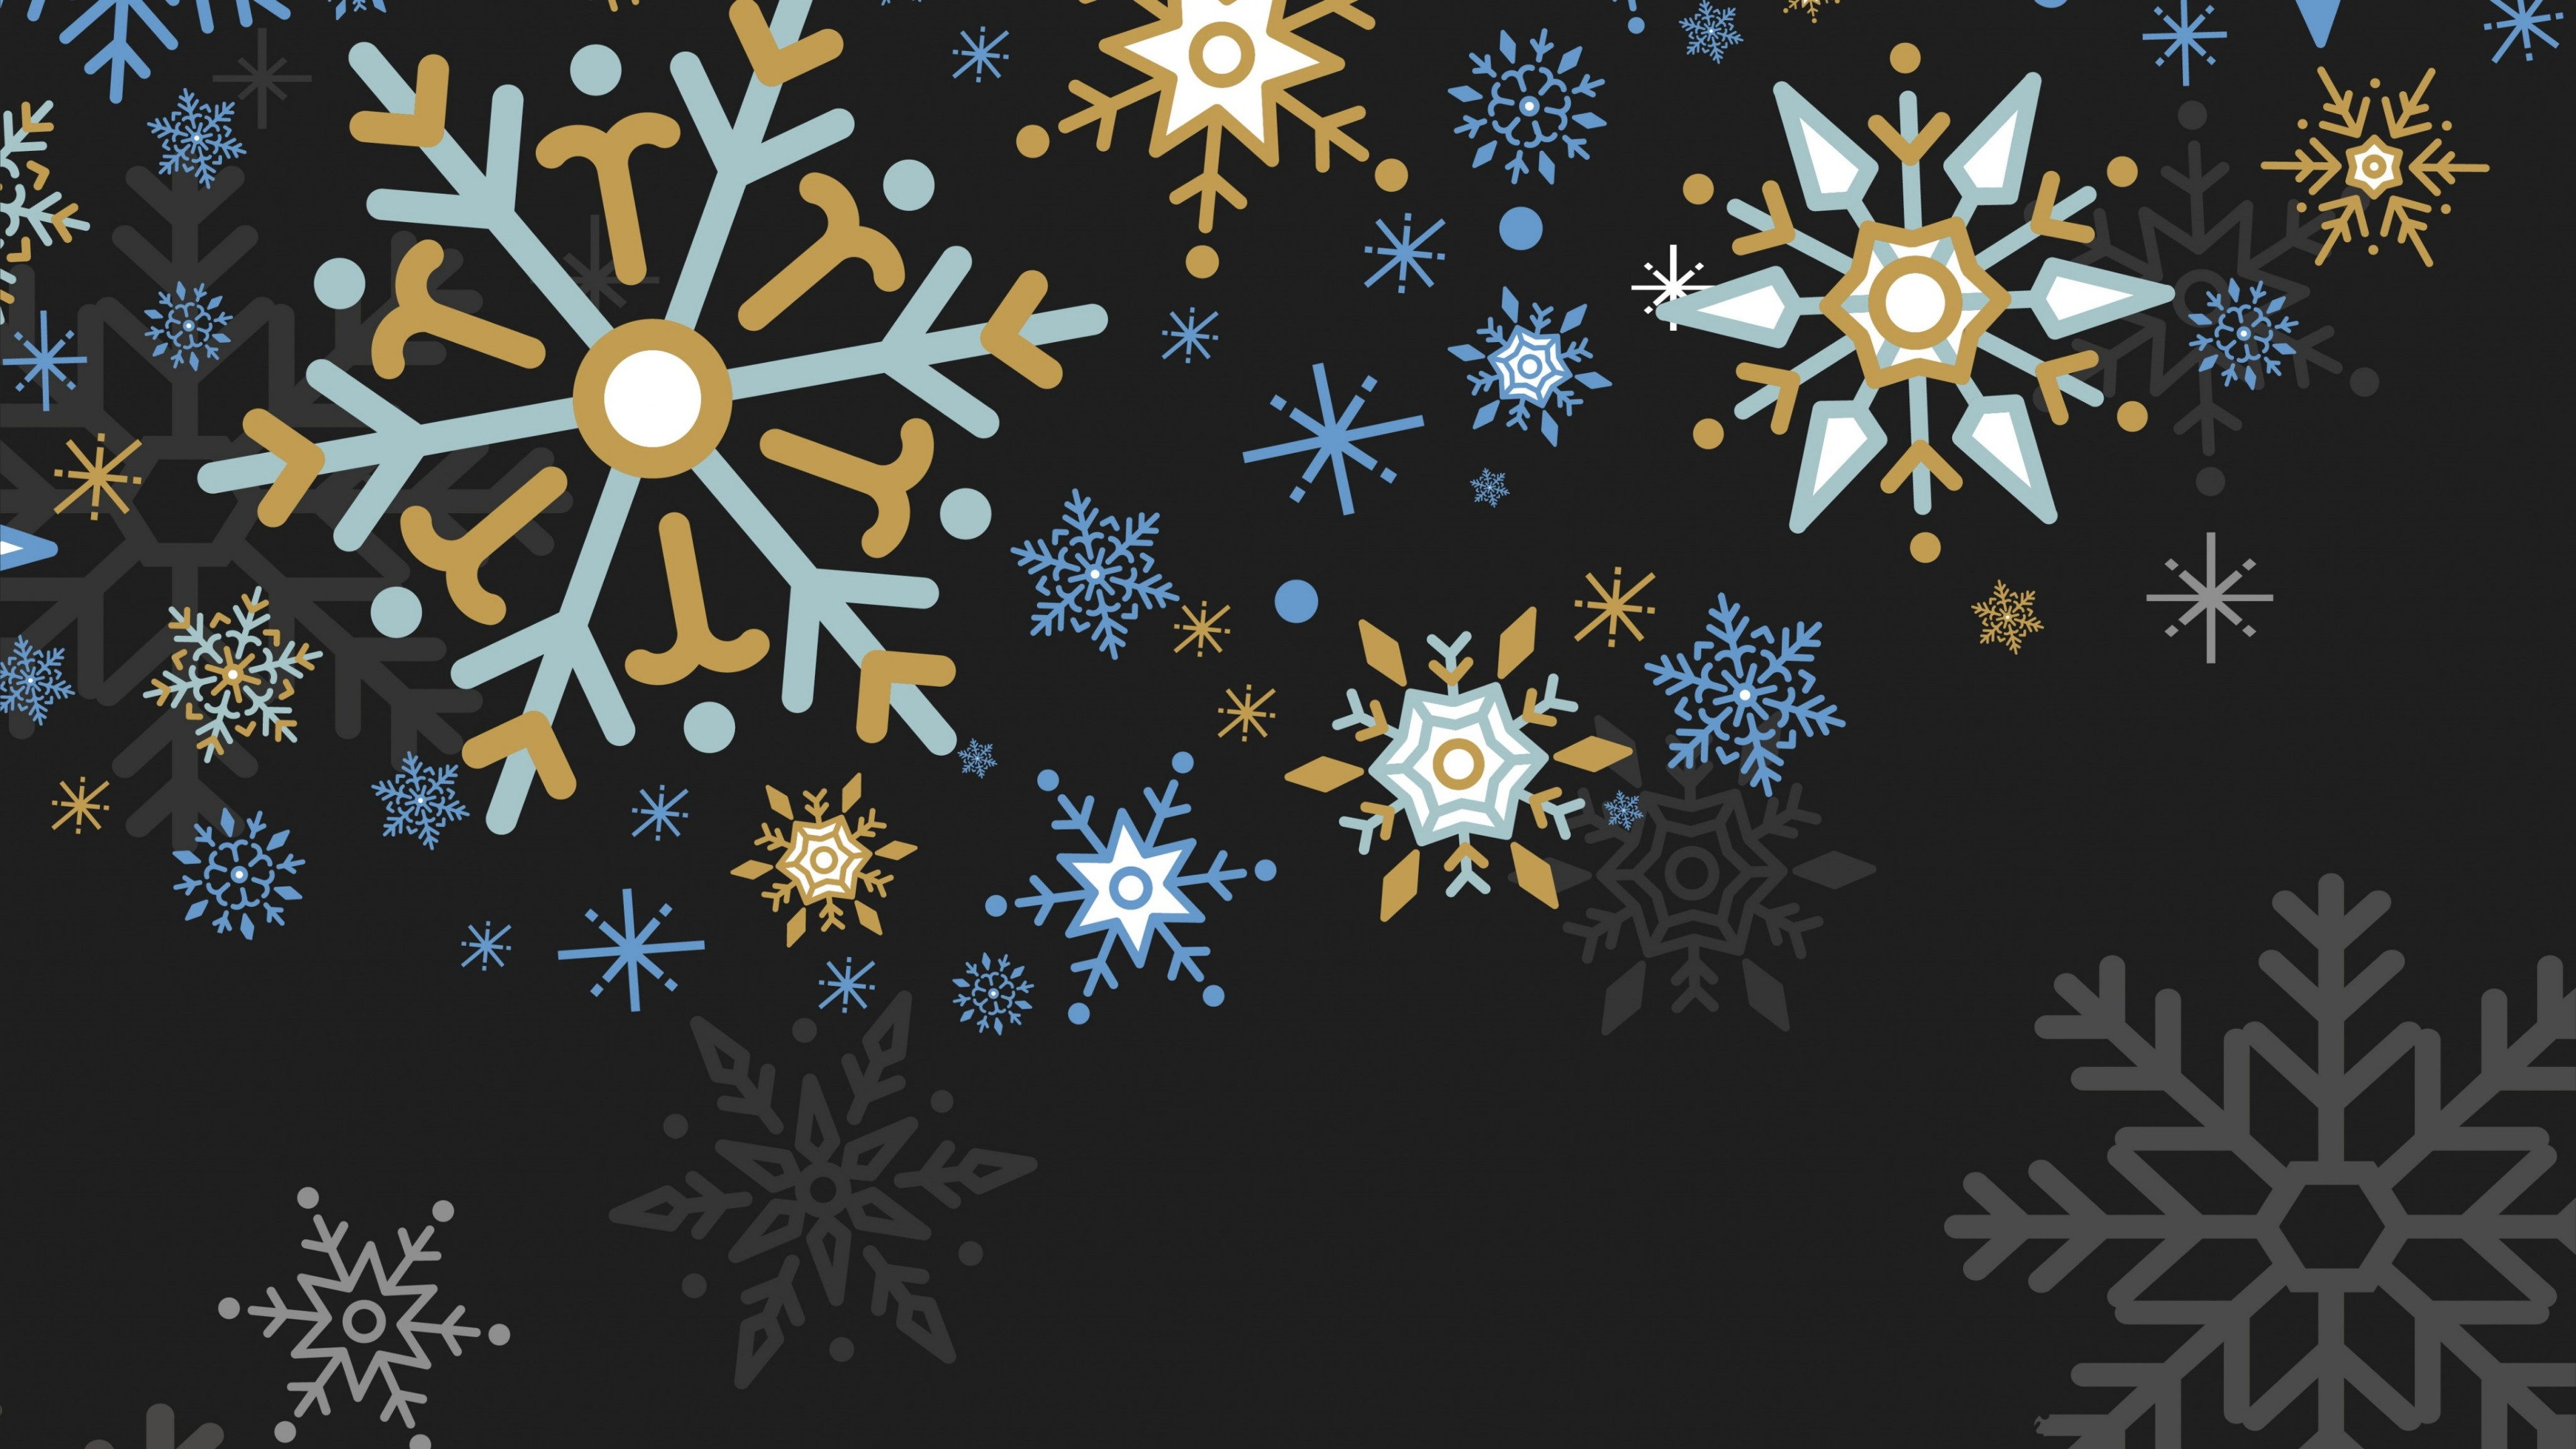 Snowflakes graphics wallpaper